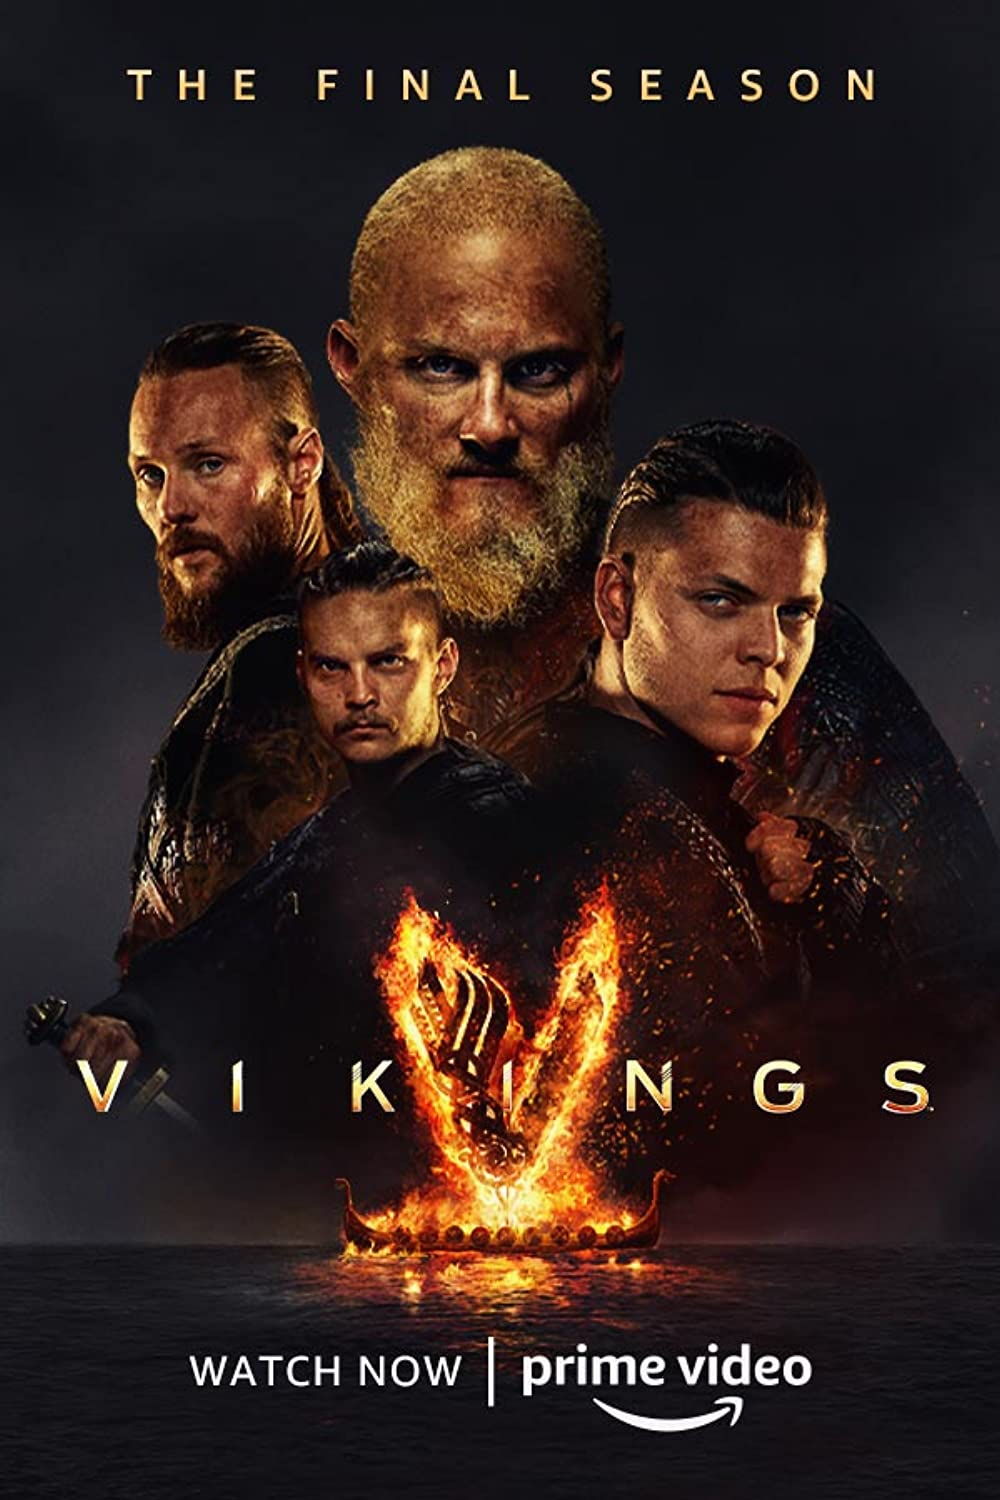 Vikings 2020 S06 Part 2 Hindi Dual Audio Complete NF Series 800MB HDRip Download